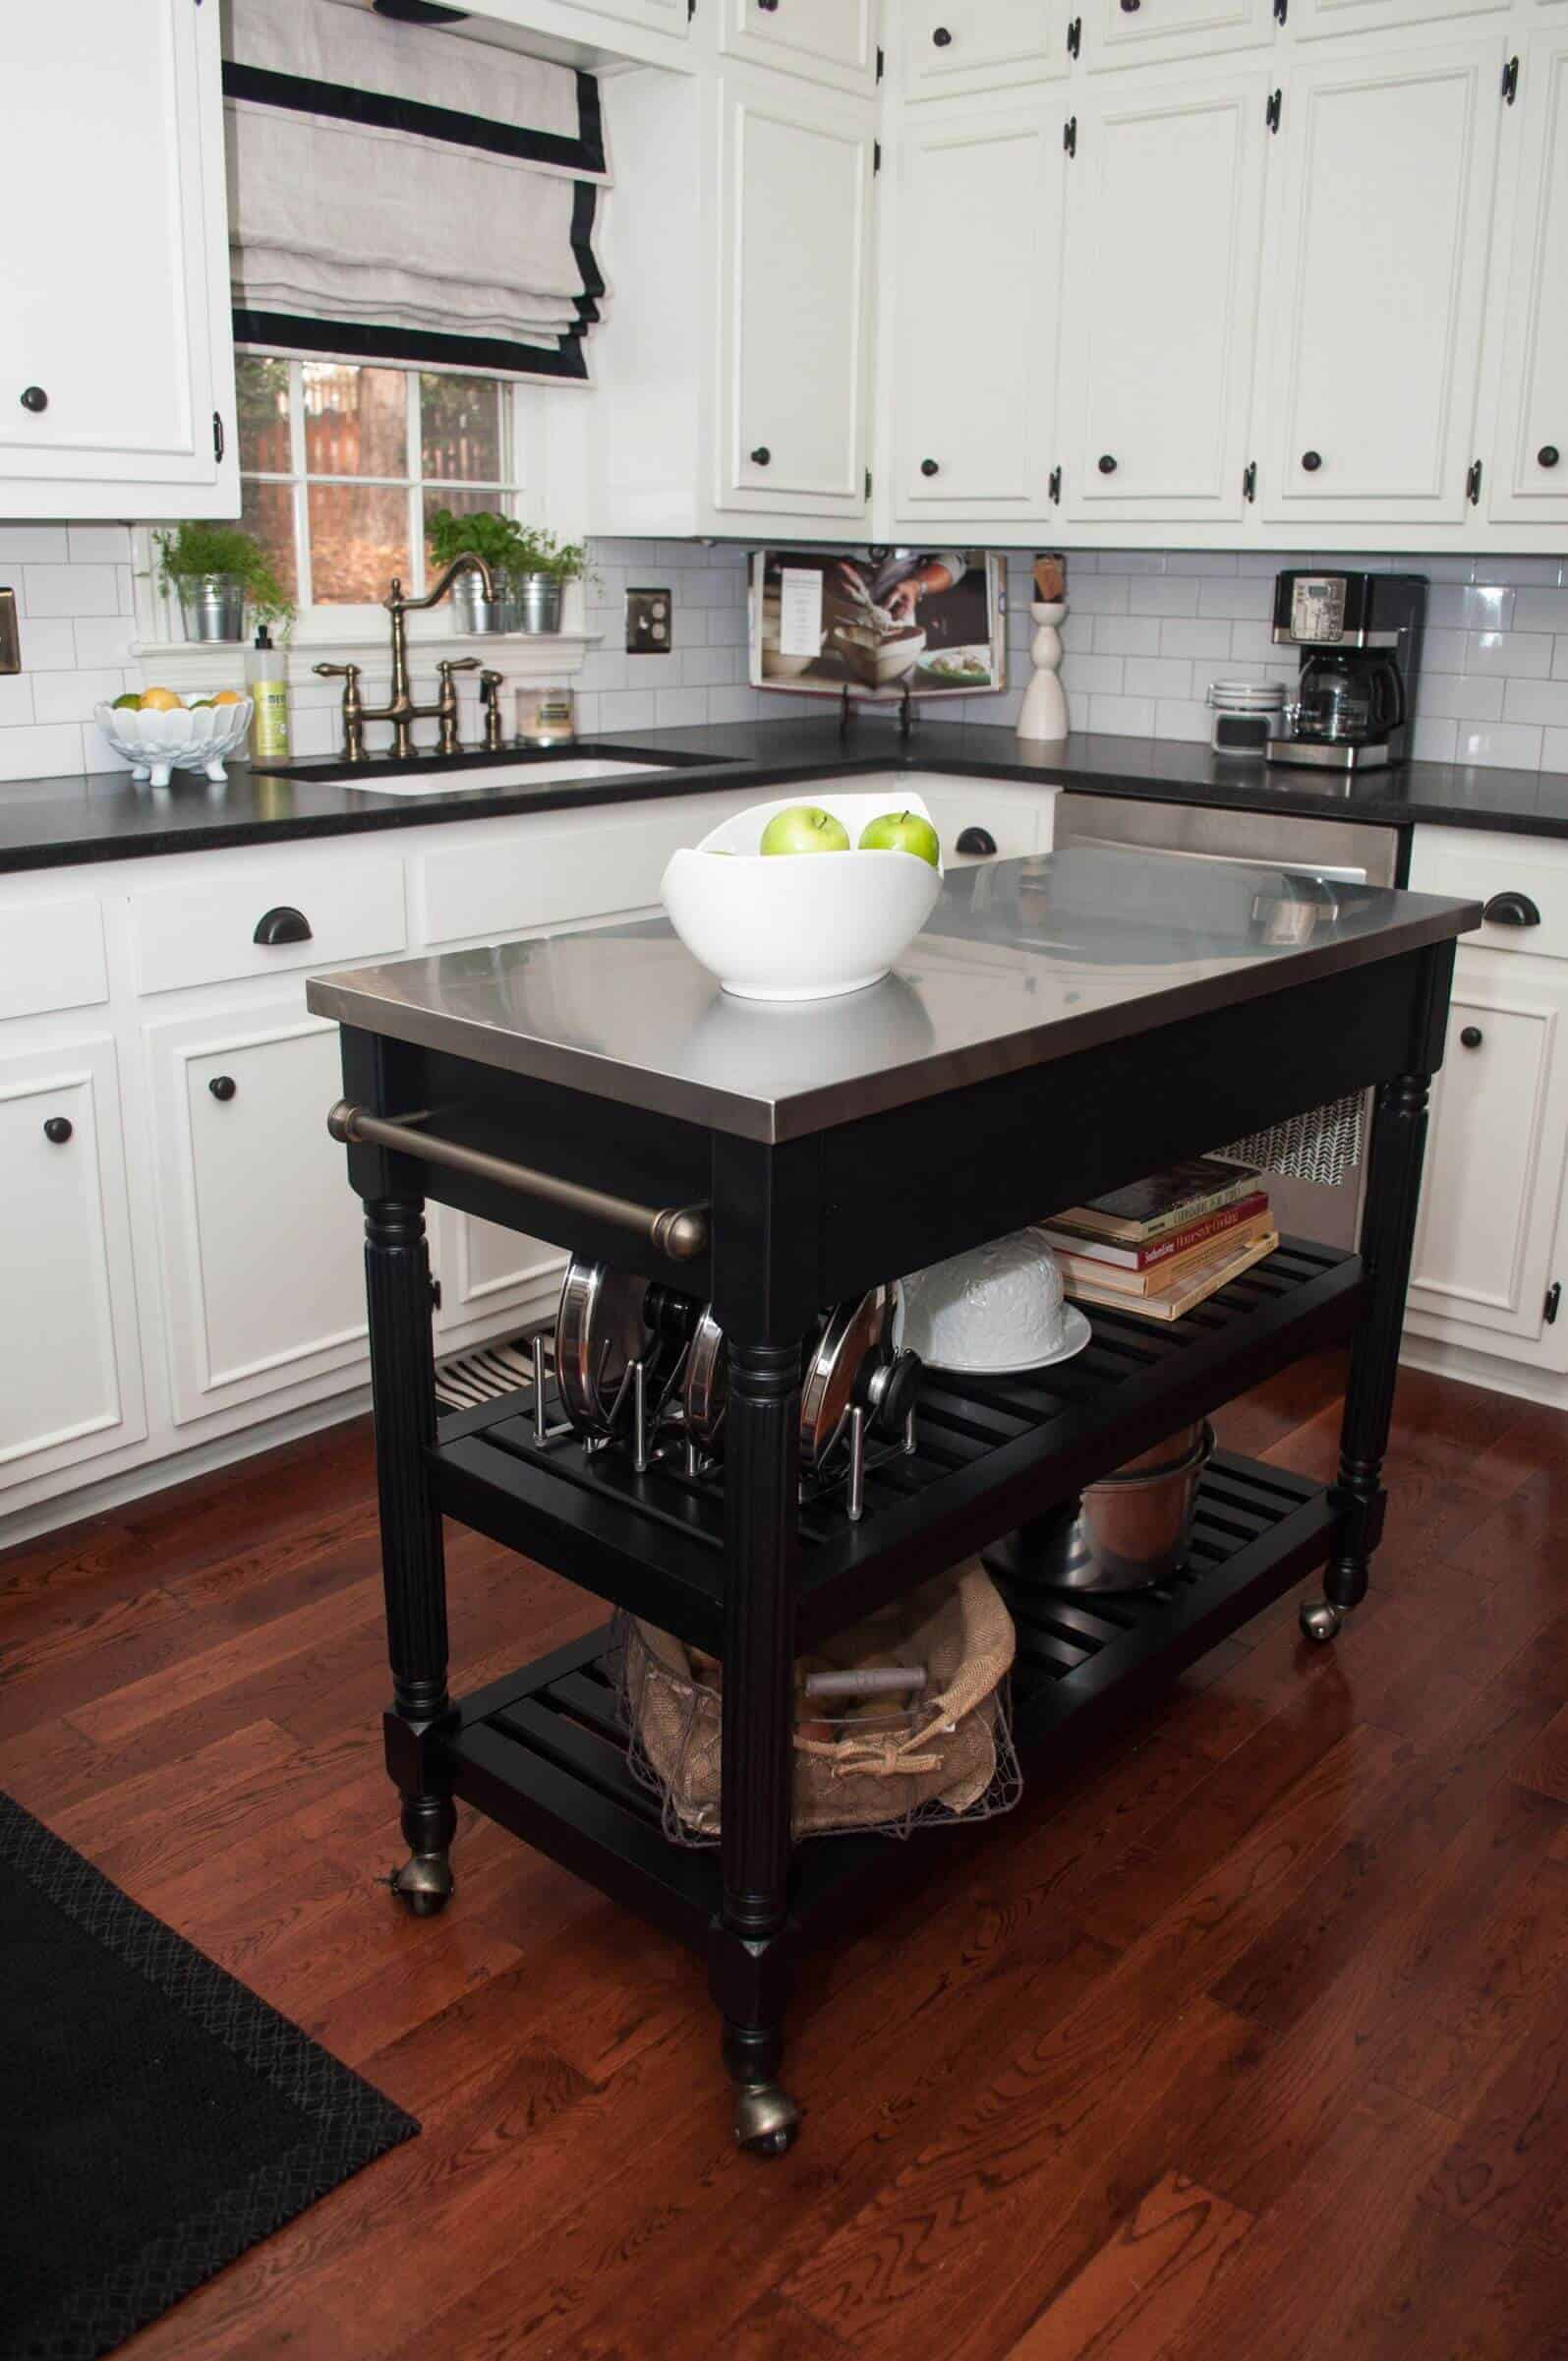 Excellent 2018 Country Kitchen Island Ideas Buy A Kitchen Island Cart Or Without Small Island Ideas Your Kitchen kitchen Country Kitchen Island Ideas